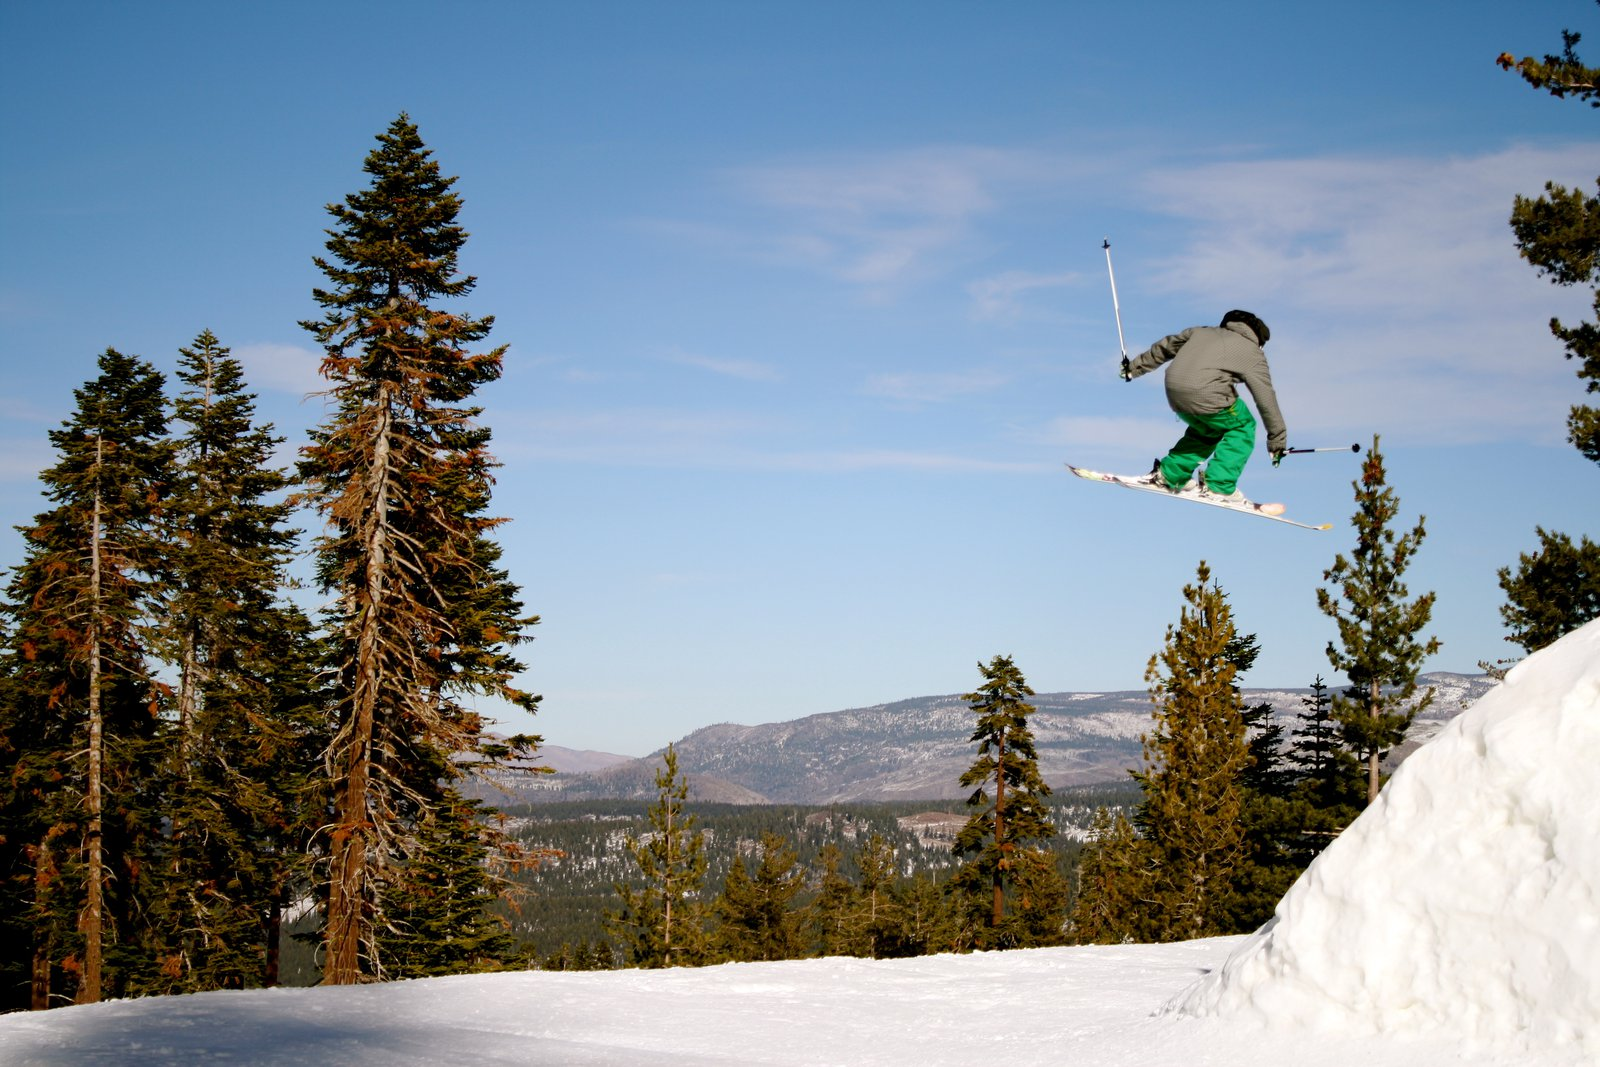 Session at northstar